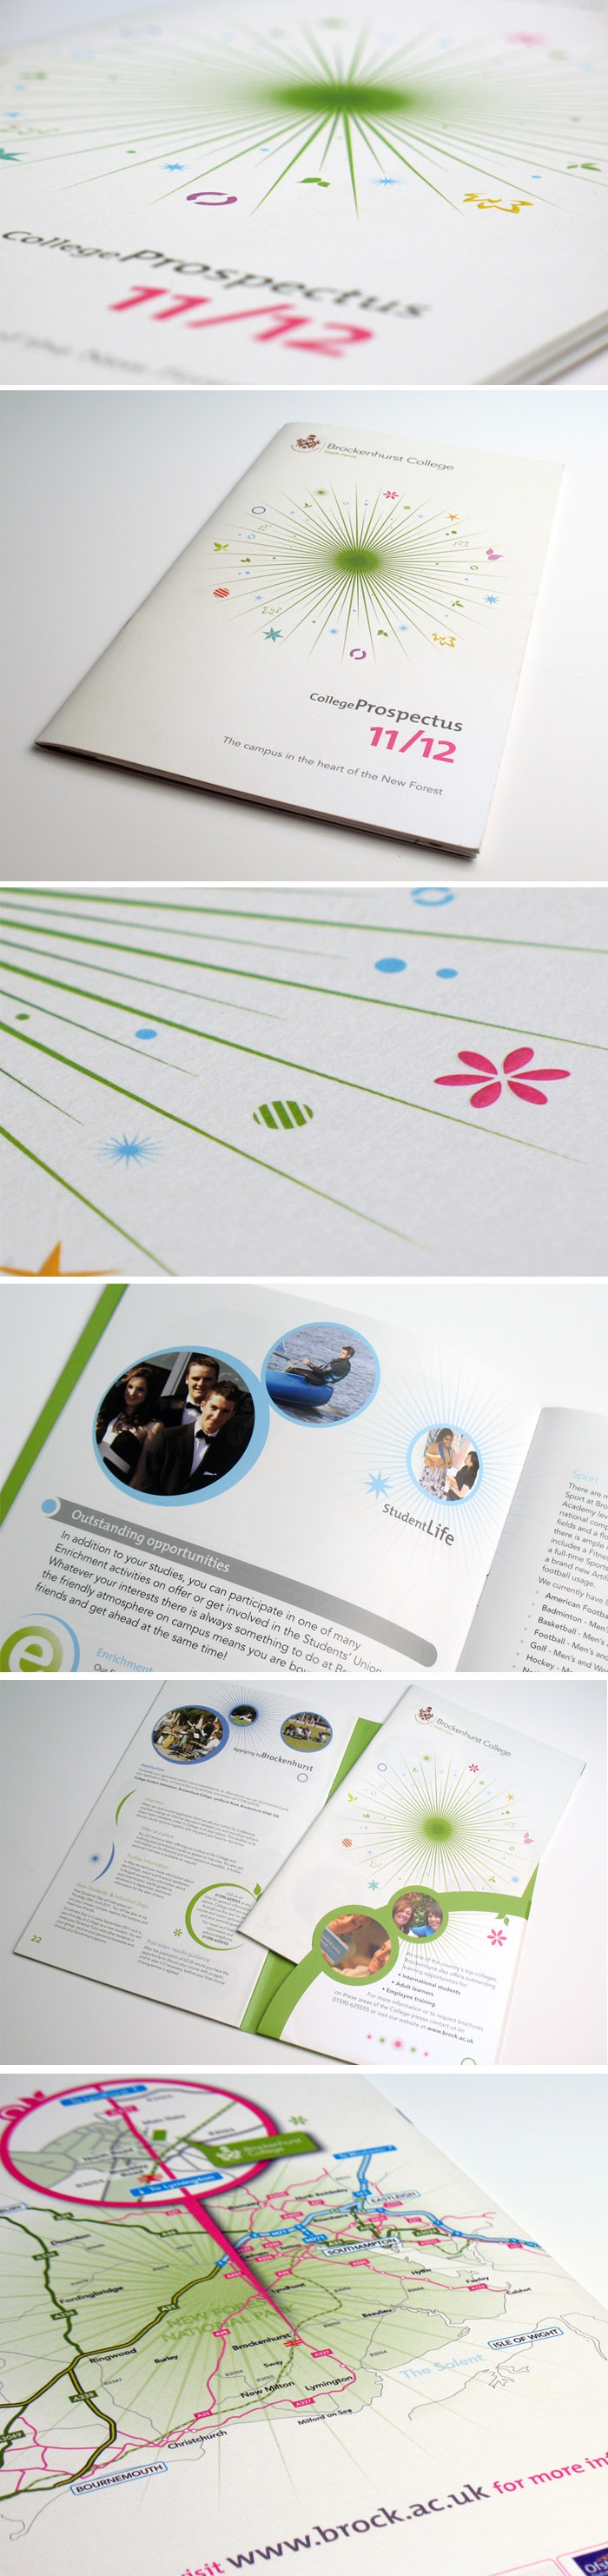 Design And Layout Of The Sixth Form Prospectus For Brockenhurst College Designed By